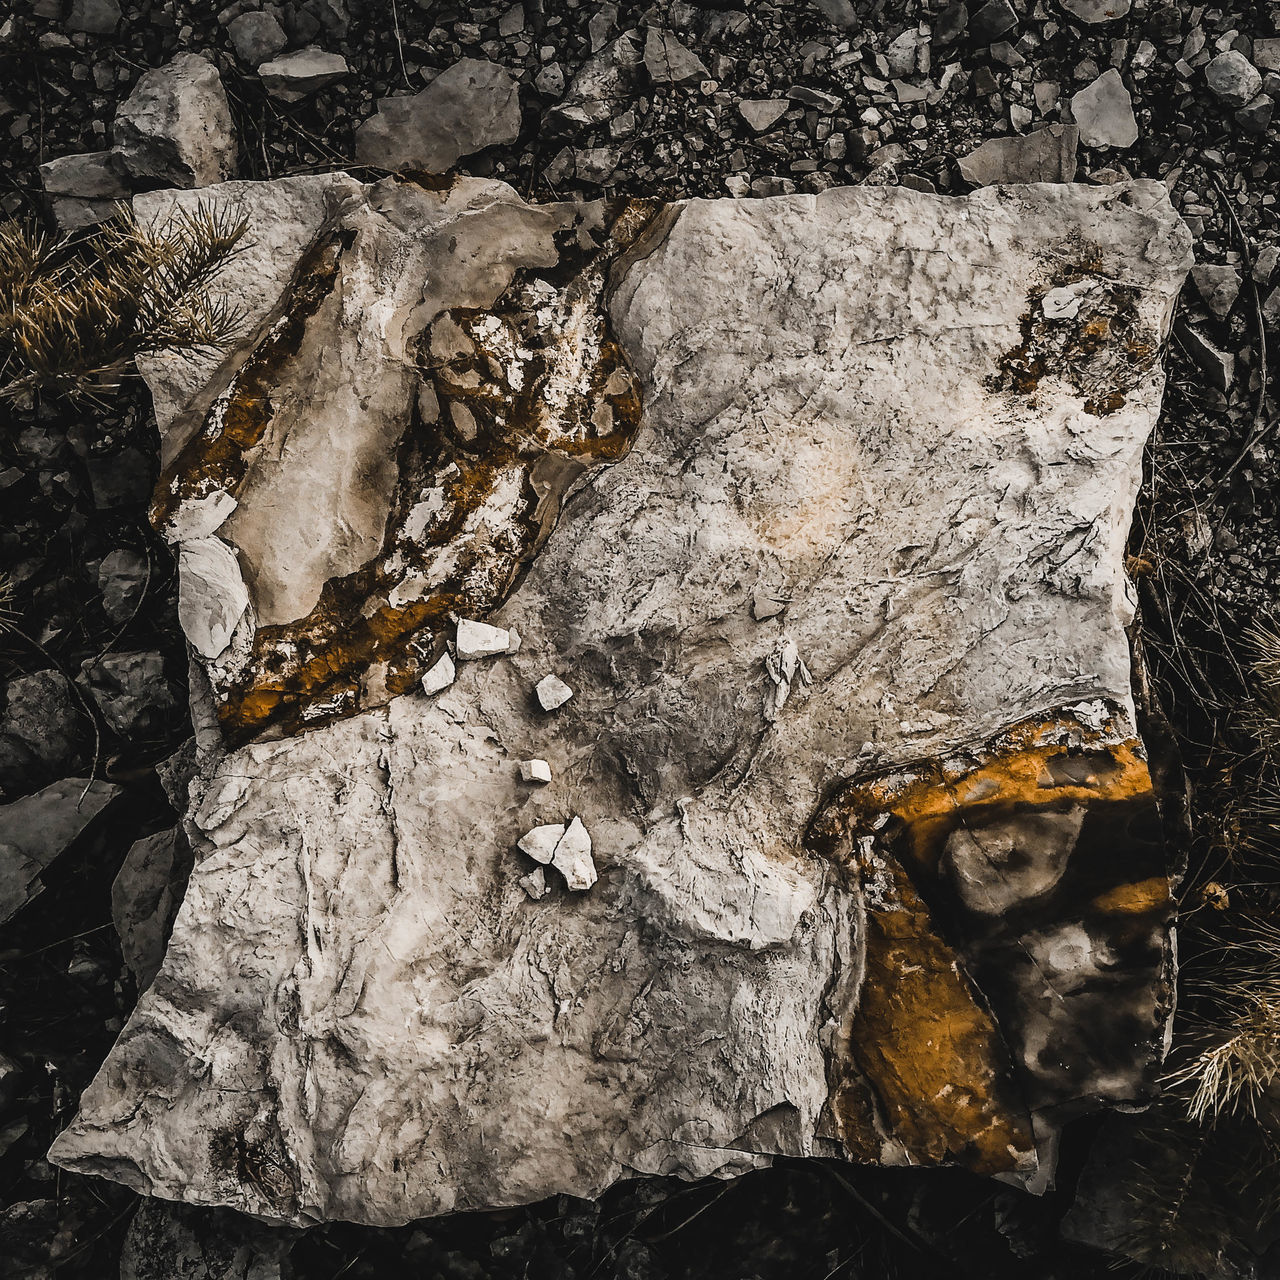 no people, day, nature, textured, outdoors, close-up, land, field, solid, rock, high angle view, burnt, rock - object, dirt, ash, full frame, dirty, animal, wood - material, wood